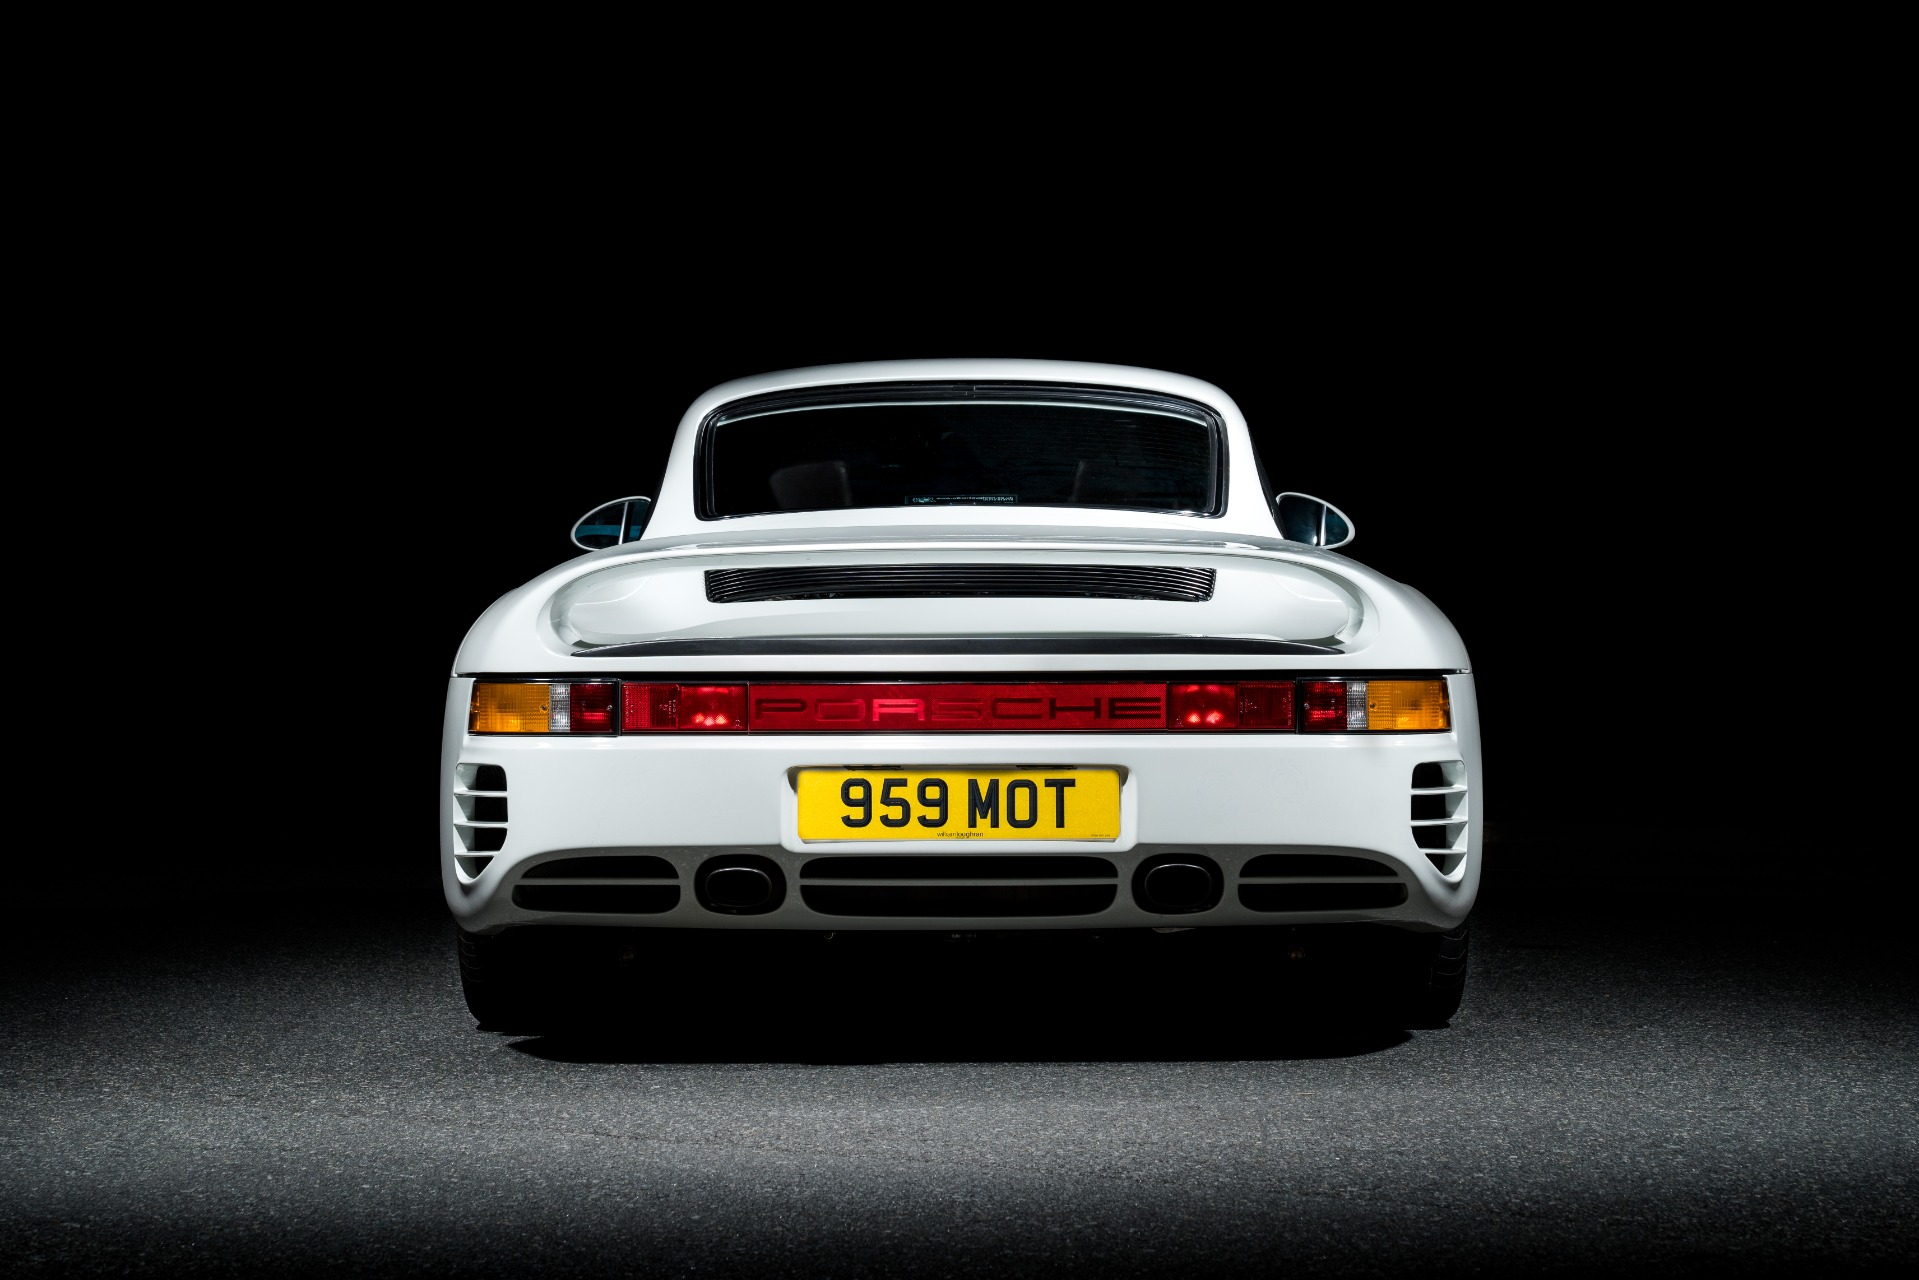 Used 1988 Porsche 959 KOMFORT COUPE / AWD / 6-SPEED MANUAL / ORIGINAL SUPERCAR for sale $1,399,999 at Formula Imports in Charlotte NC 28227 7